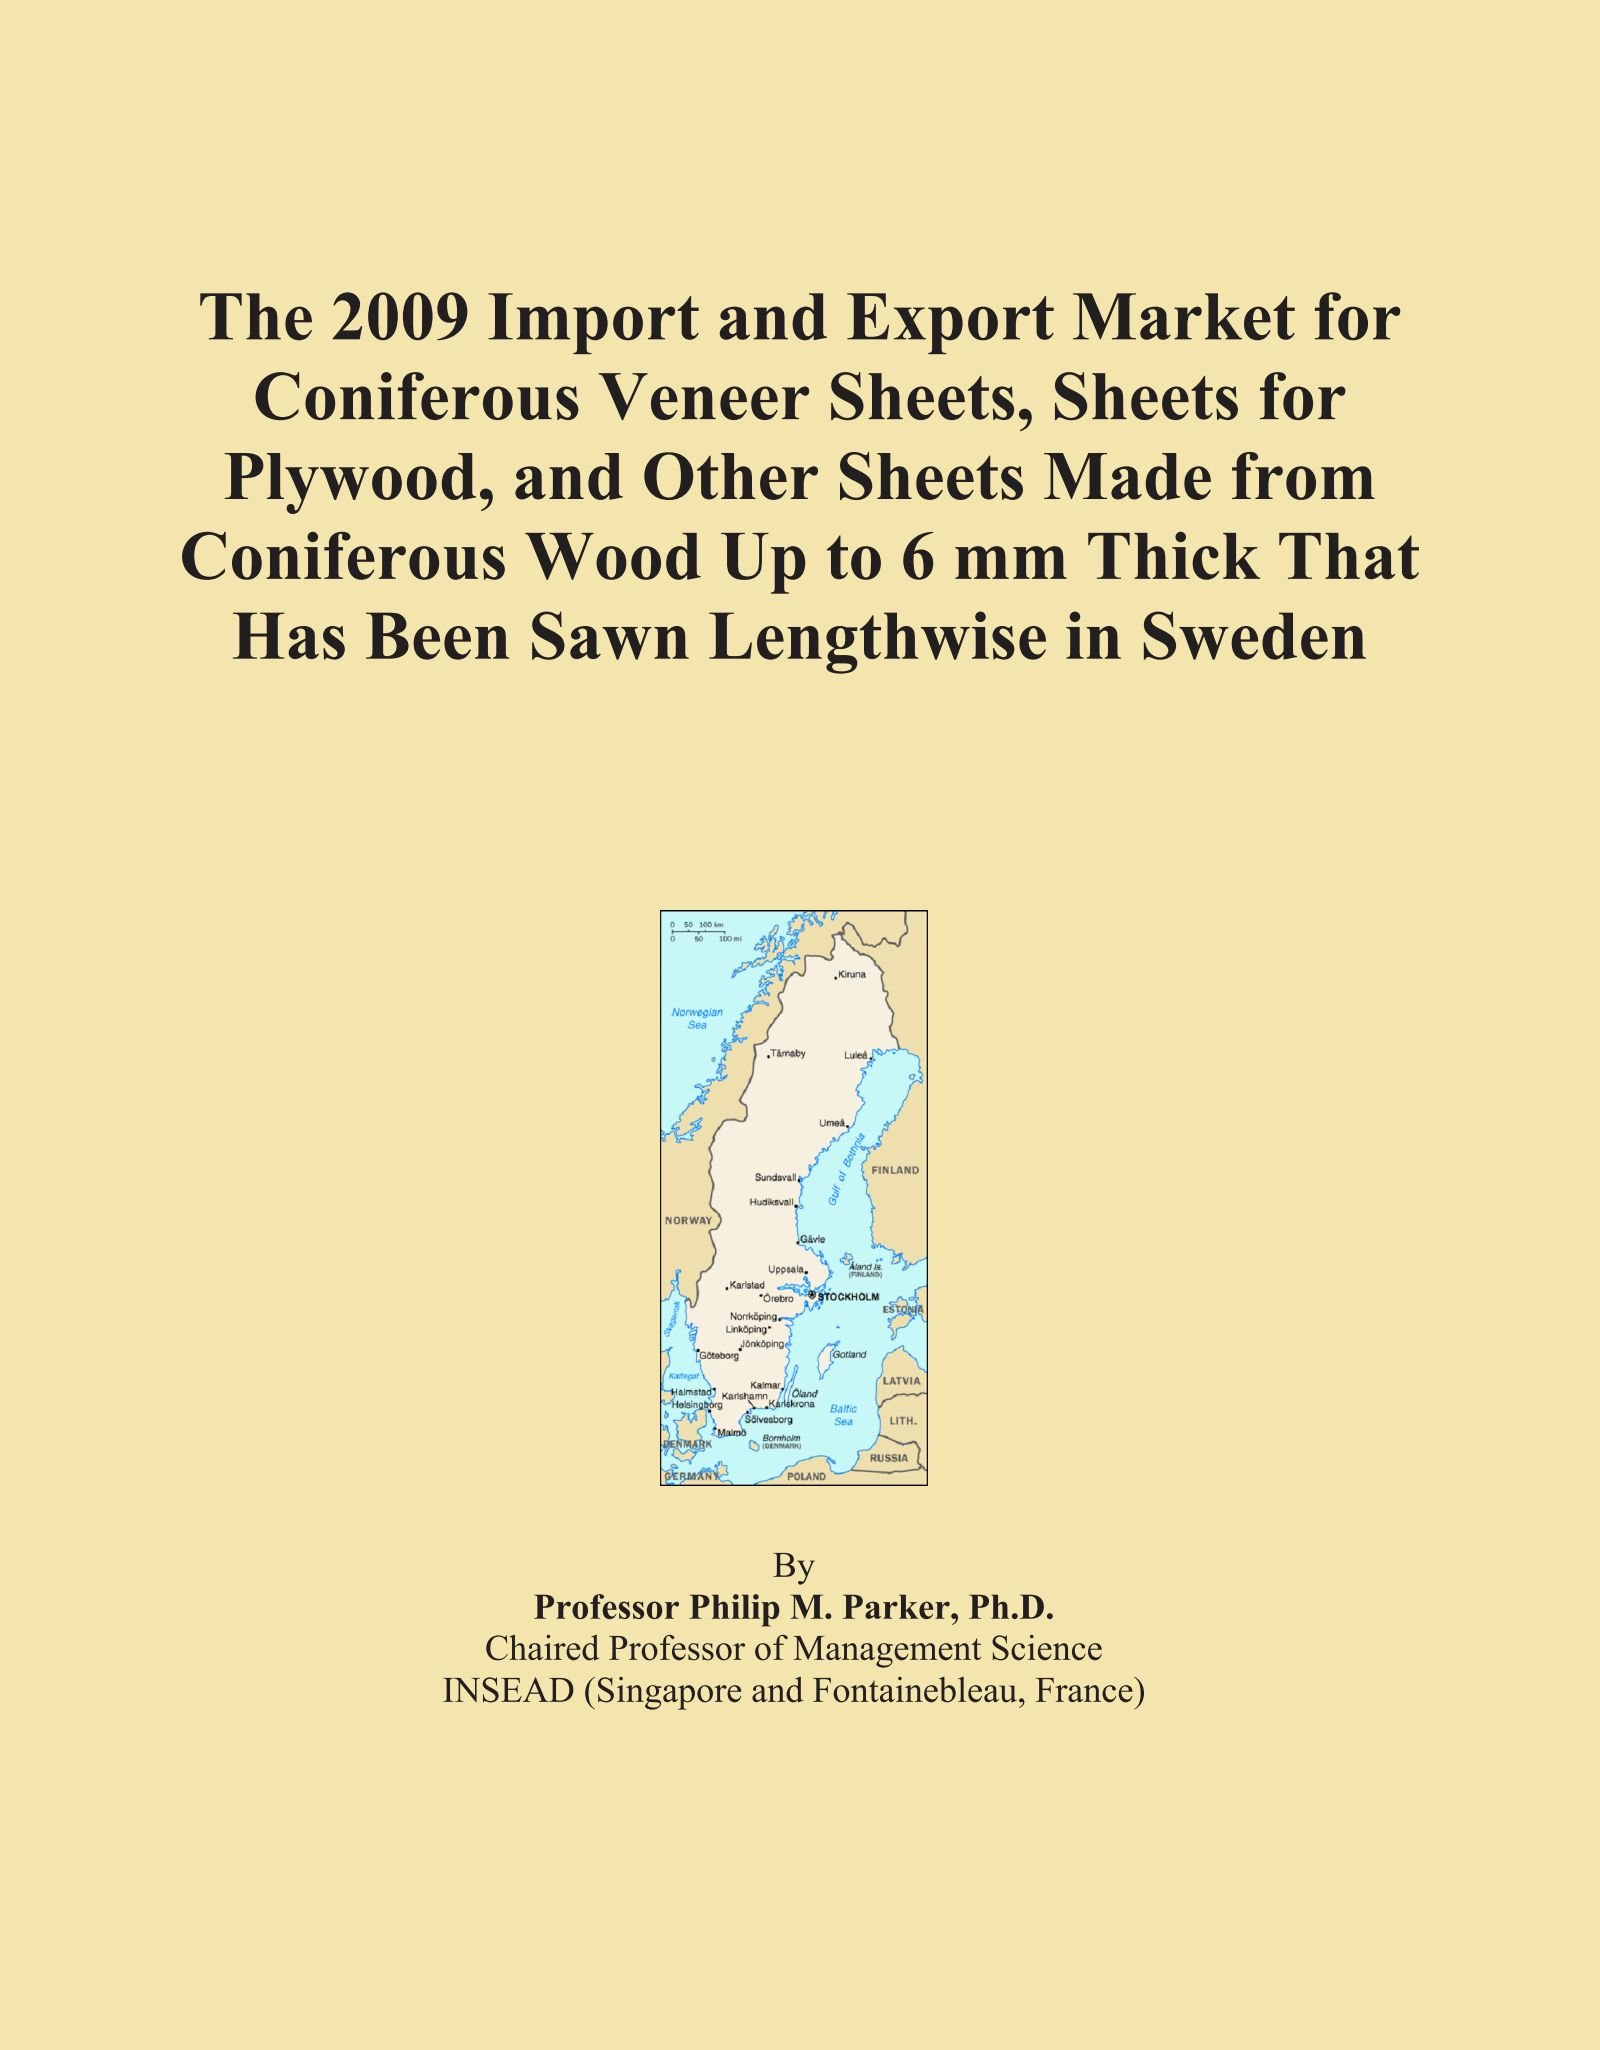 Download The 2009 Import and Export Market for Coniferous Veneer Sheets, Sheets for Plywood, and Other Sheets Made from Coniferous Wood Up to 6 mm Thick That Has Been Sawn Lengthwise in Sweden pdf